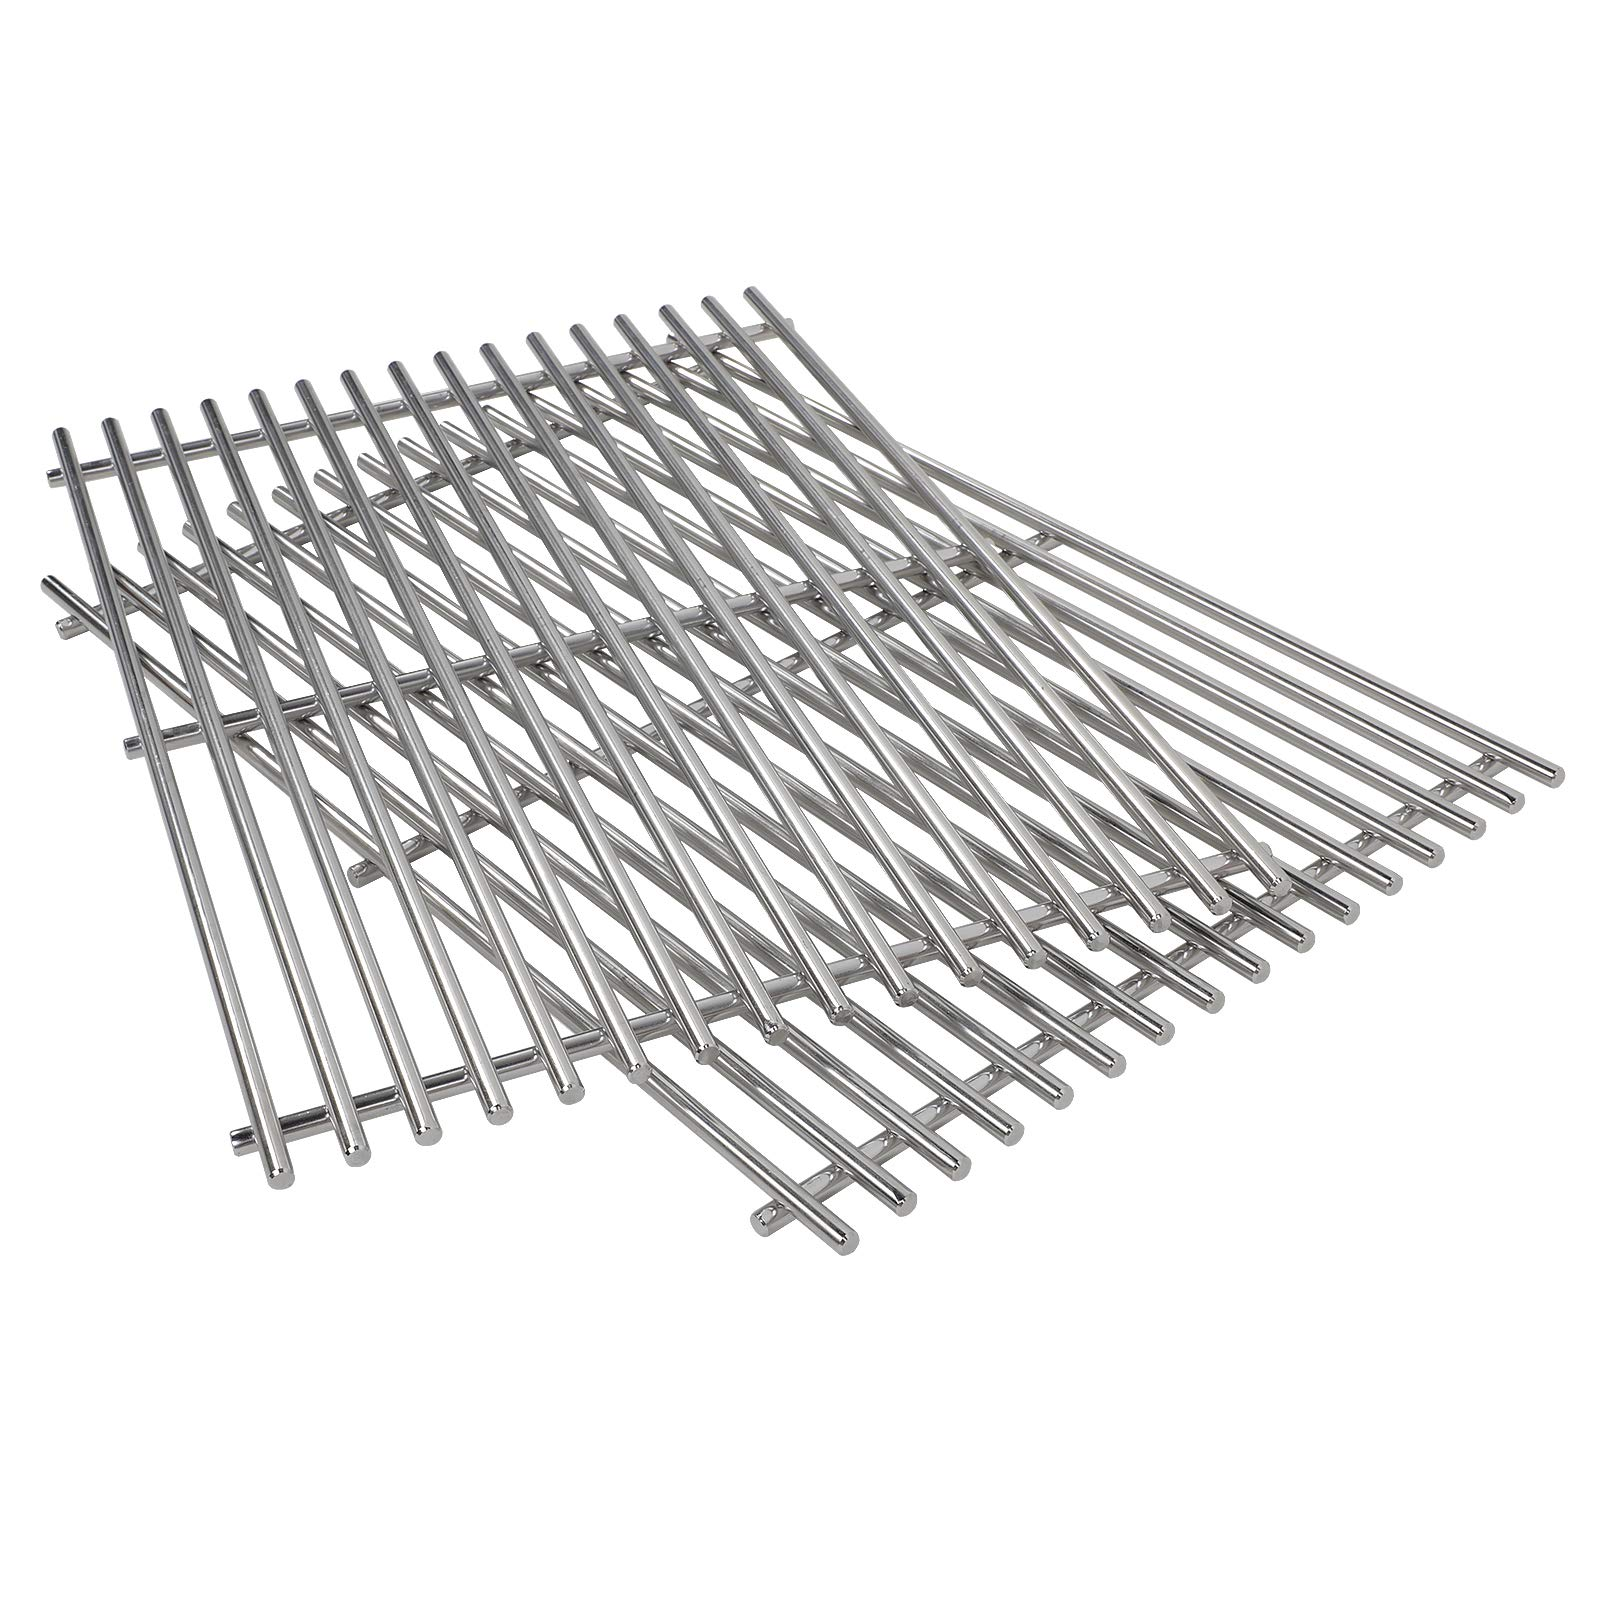 QuliMetal 7639, 304 Stainless Steel Cooking Grates (17.3 x 11.8 x 0.5) for Weber Spirit 300 Series, Spirit 700, Genesis Silver B & C, Genesis Gold B & C, Genesis Platinum B & C by QuliMetal